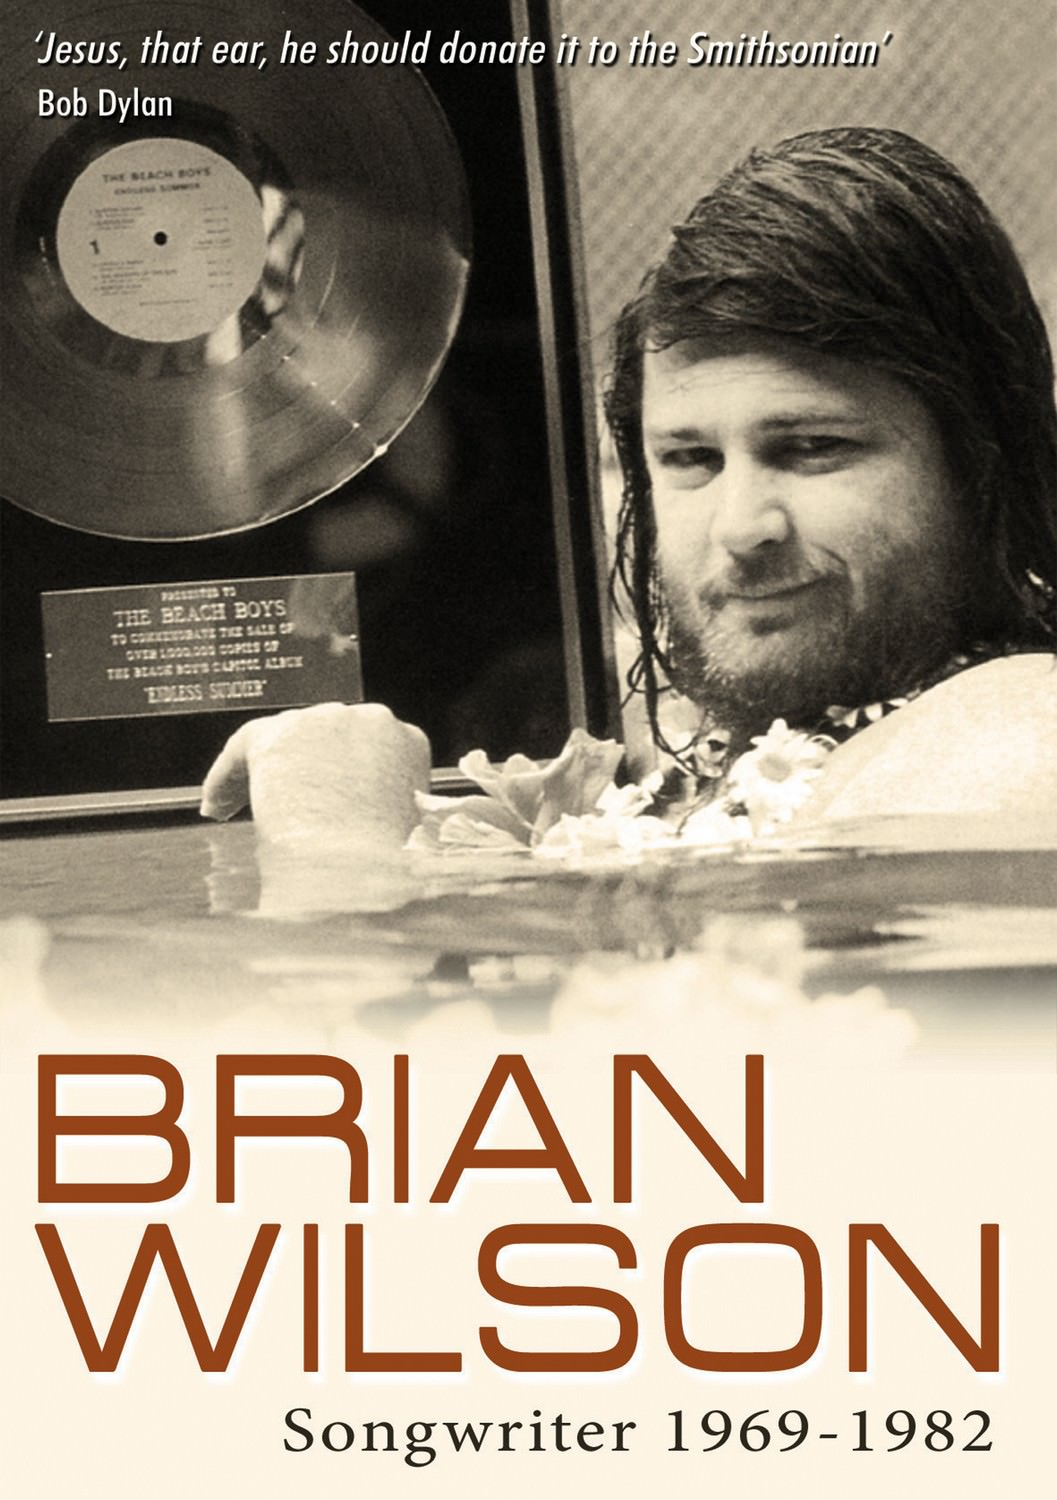 Songwriter 1969-1982 cover